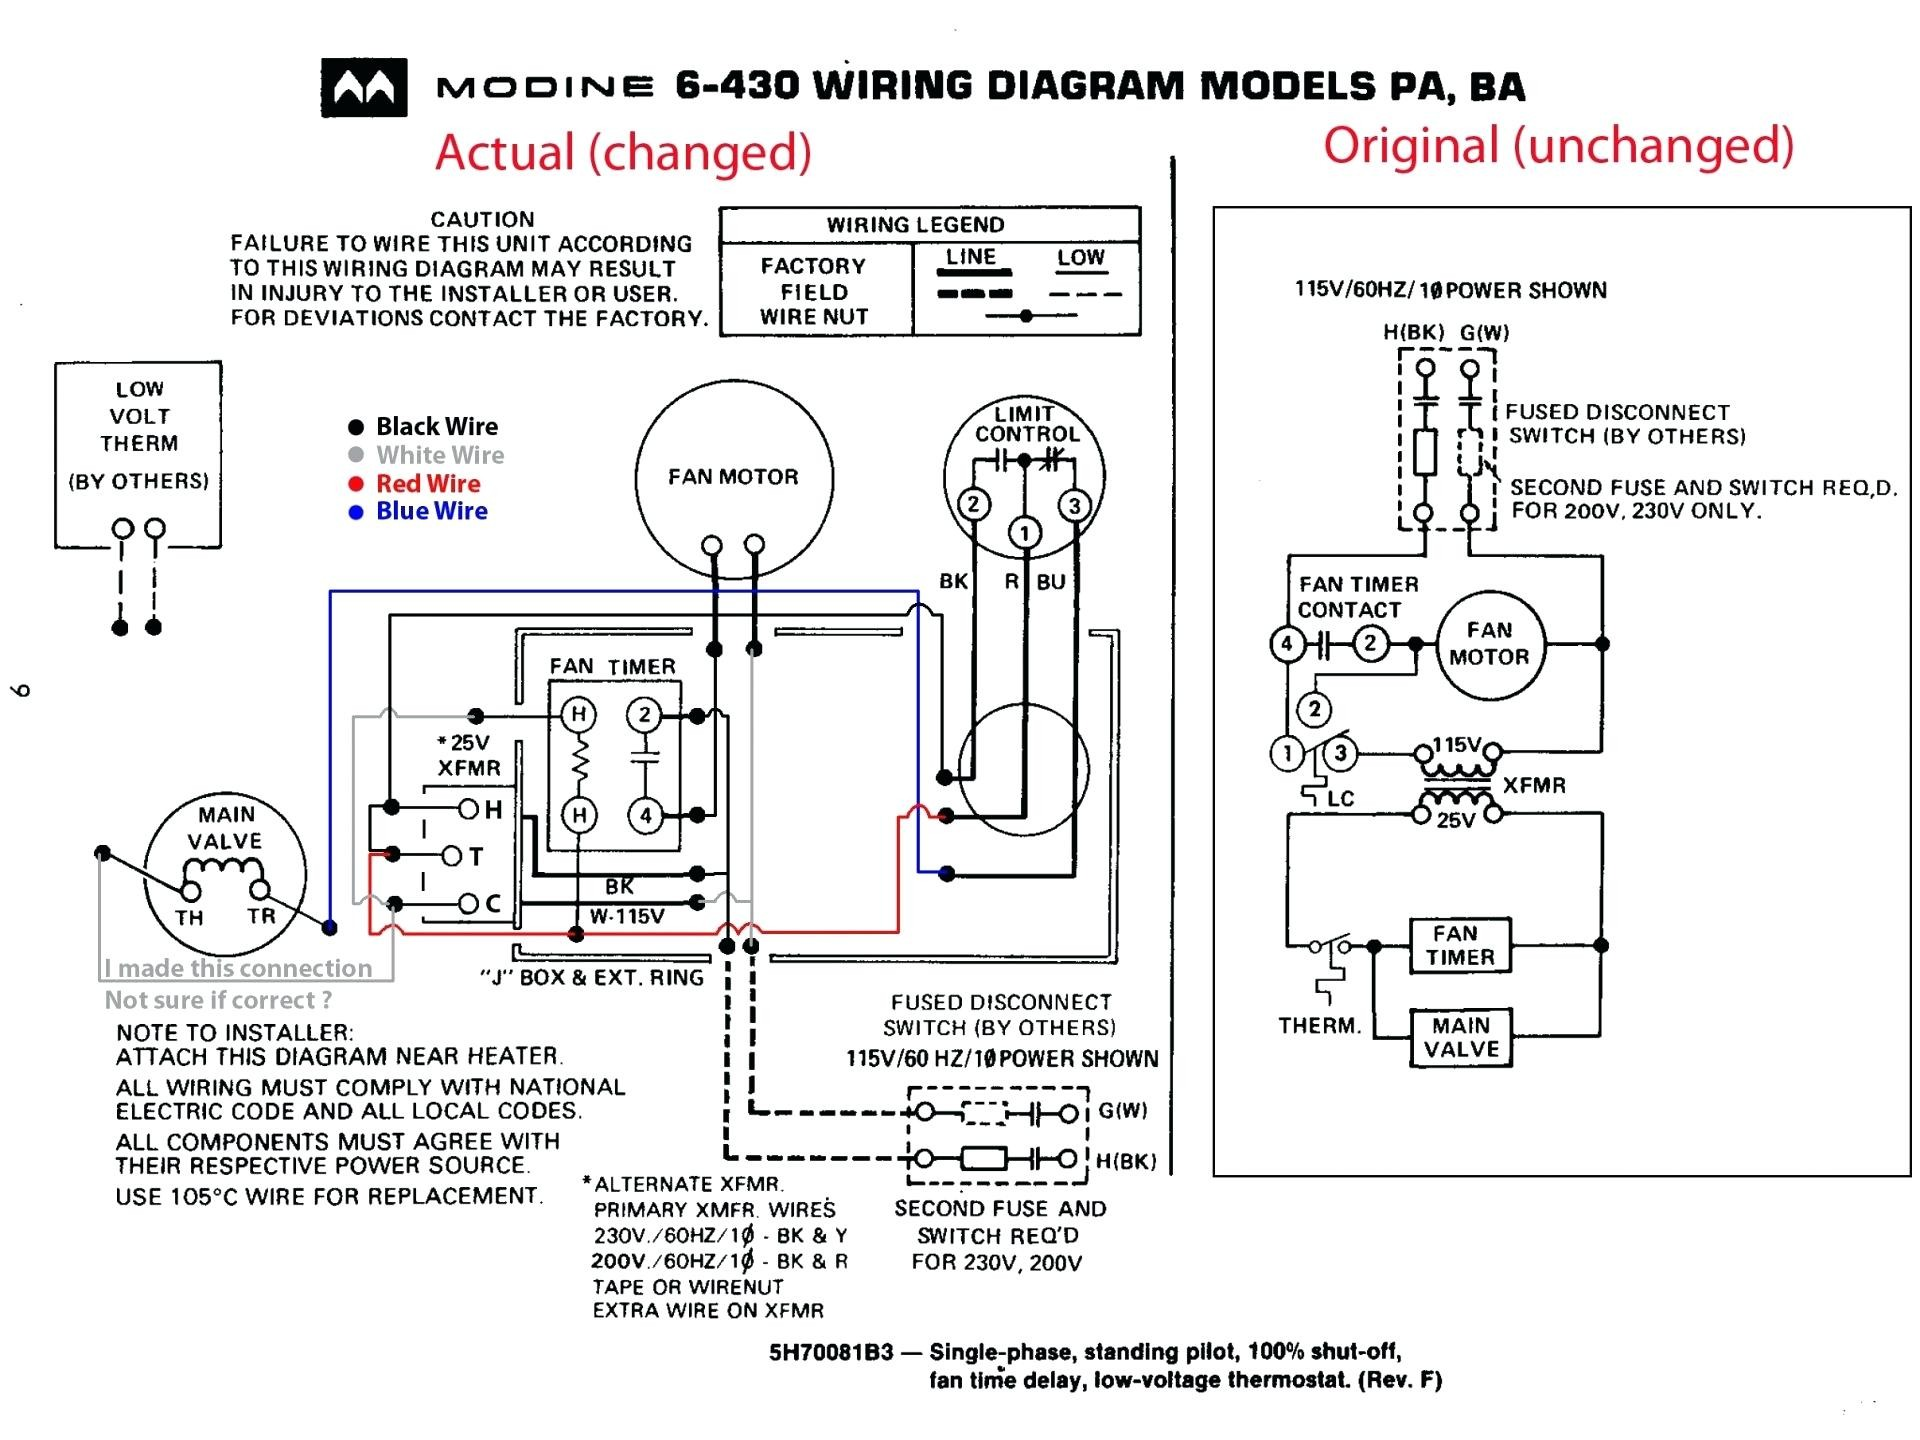 Rescue Hvac Motor 120v 1/2 Hp Wiring Diagram